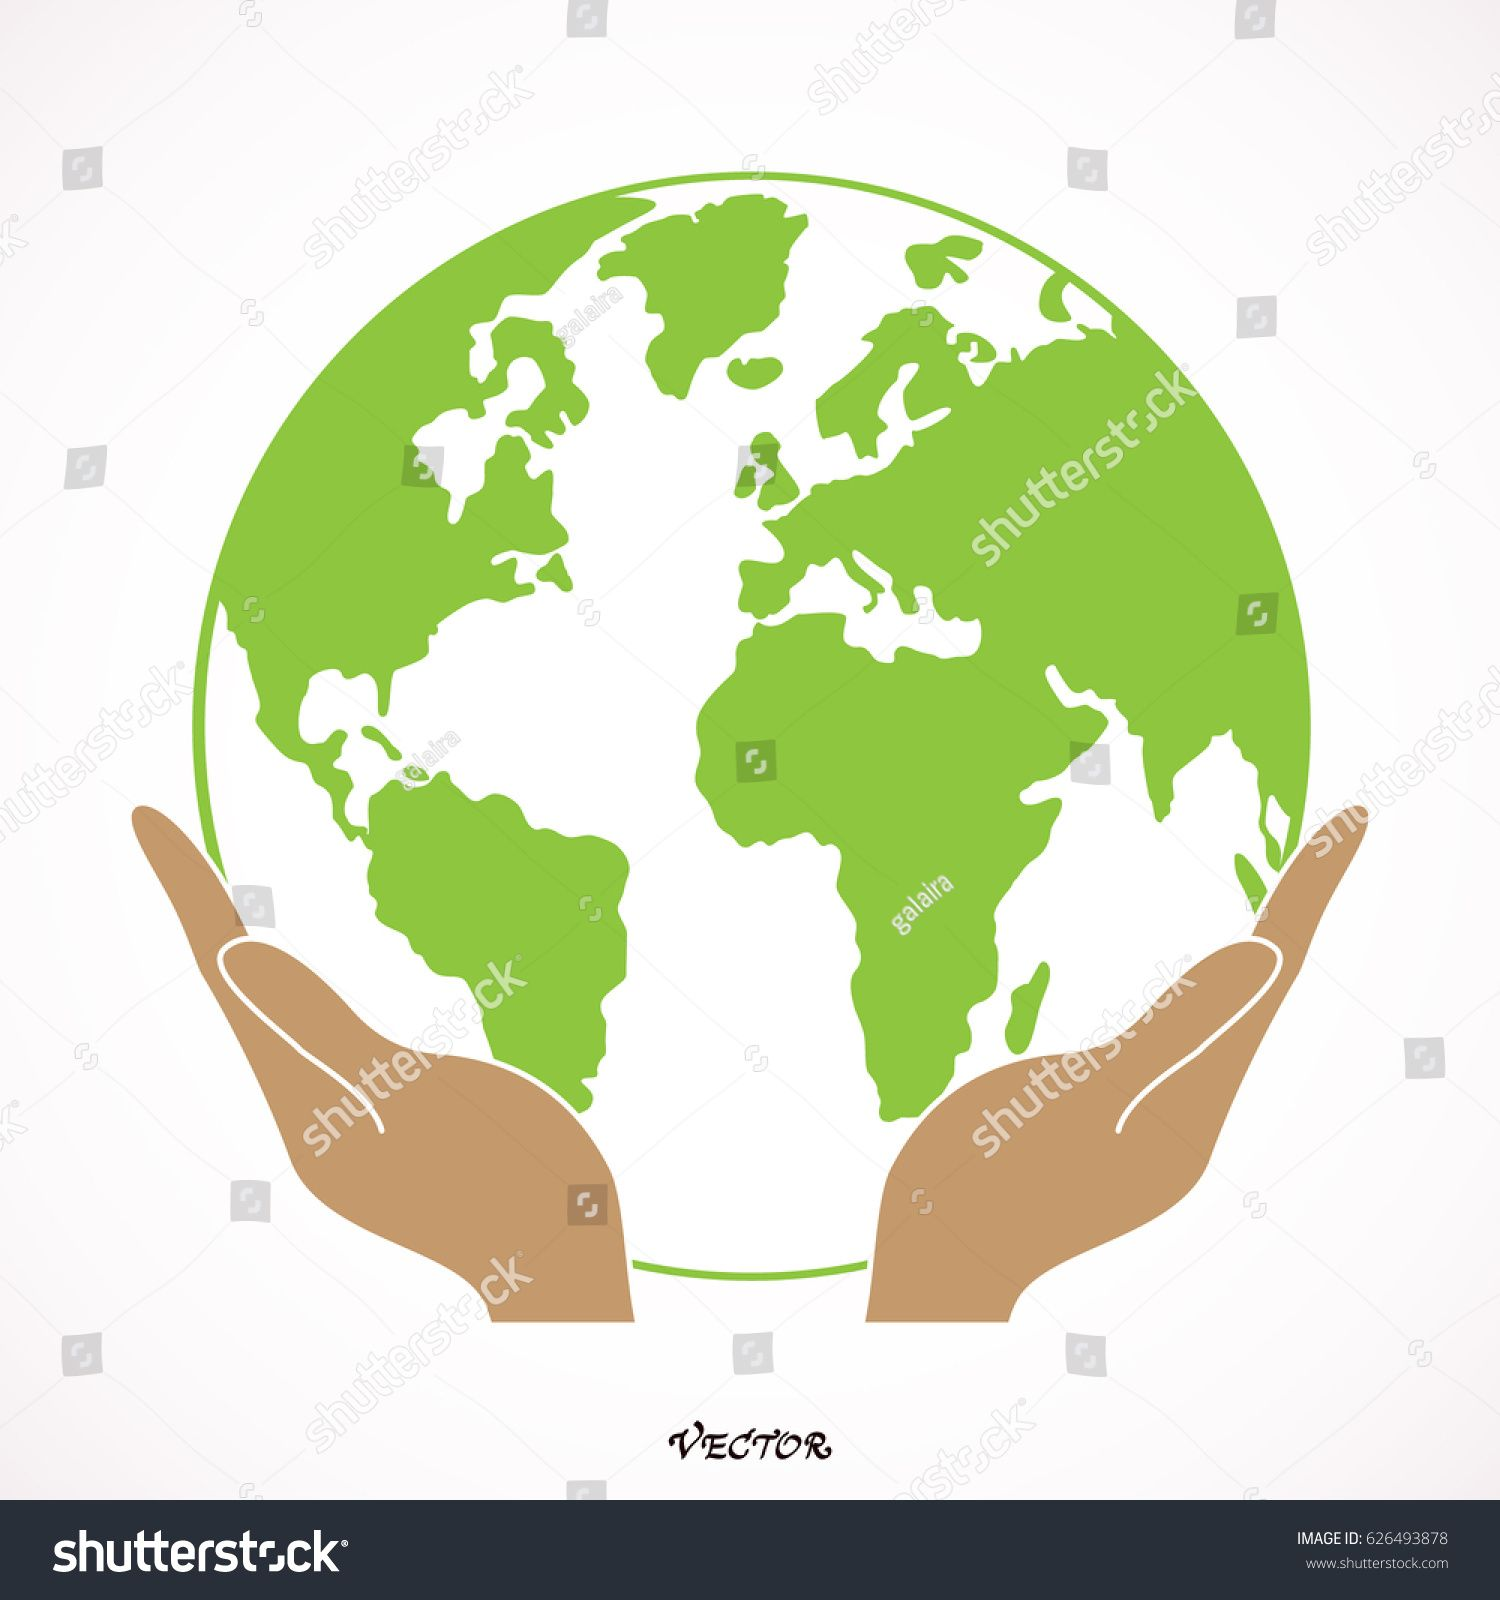 Two Open Hands Holding Globe Isolated Vector Colored Icon Open Hands Illustration Hands